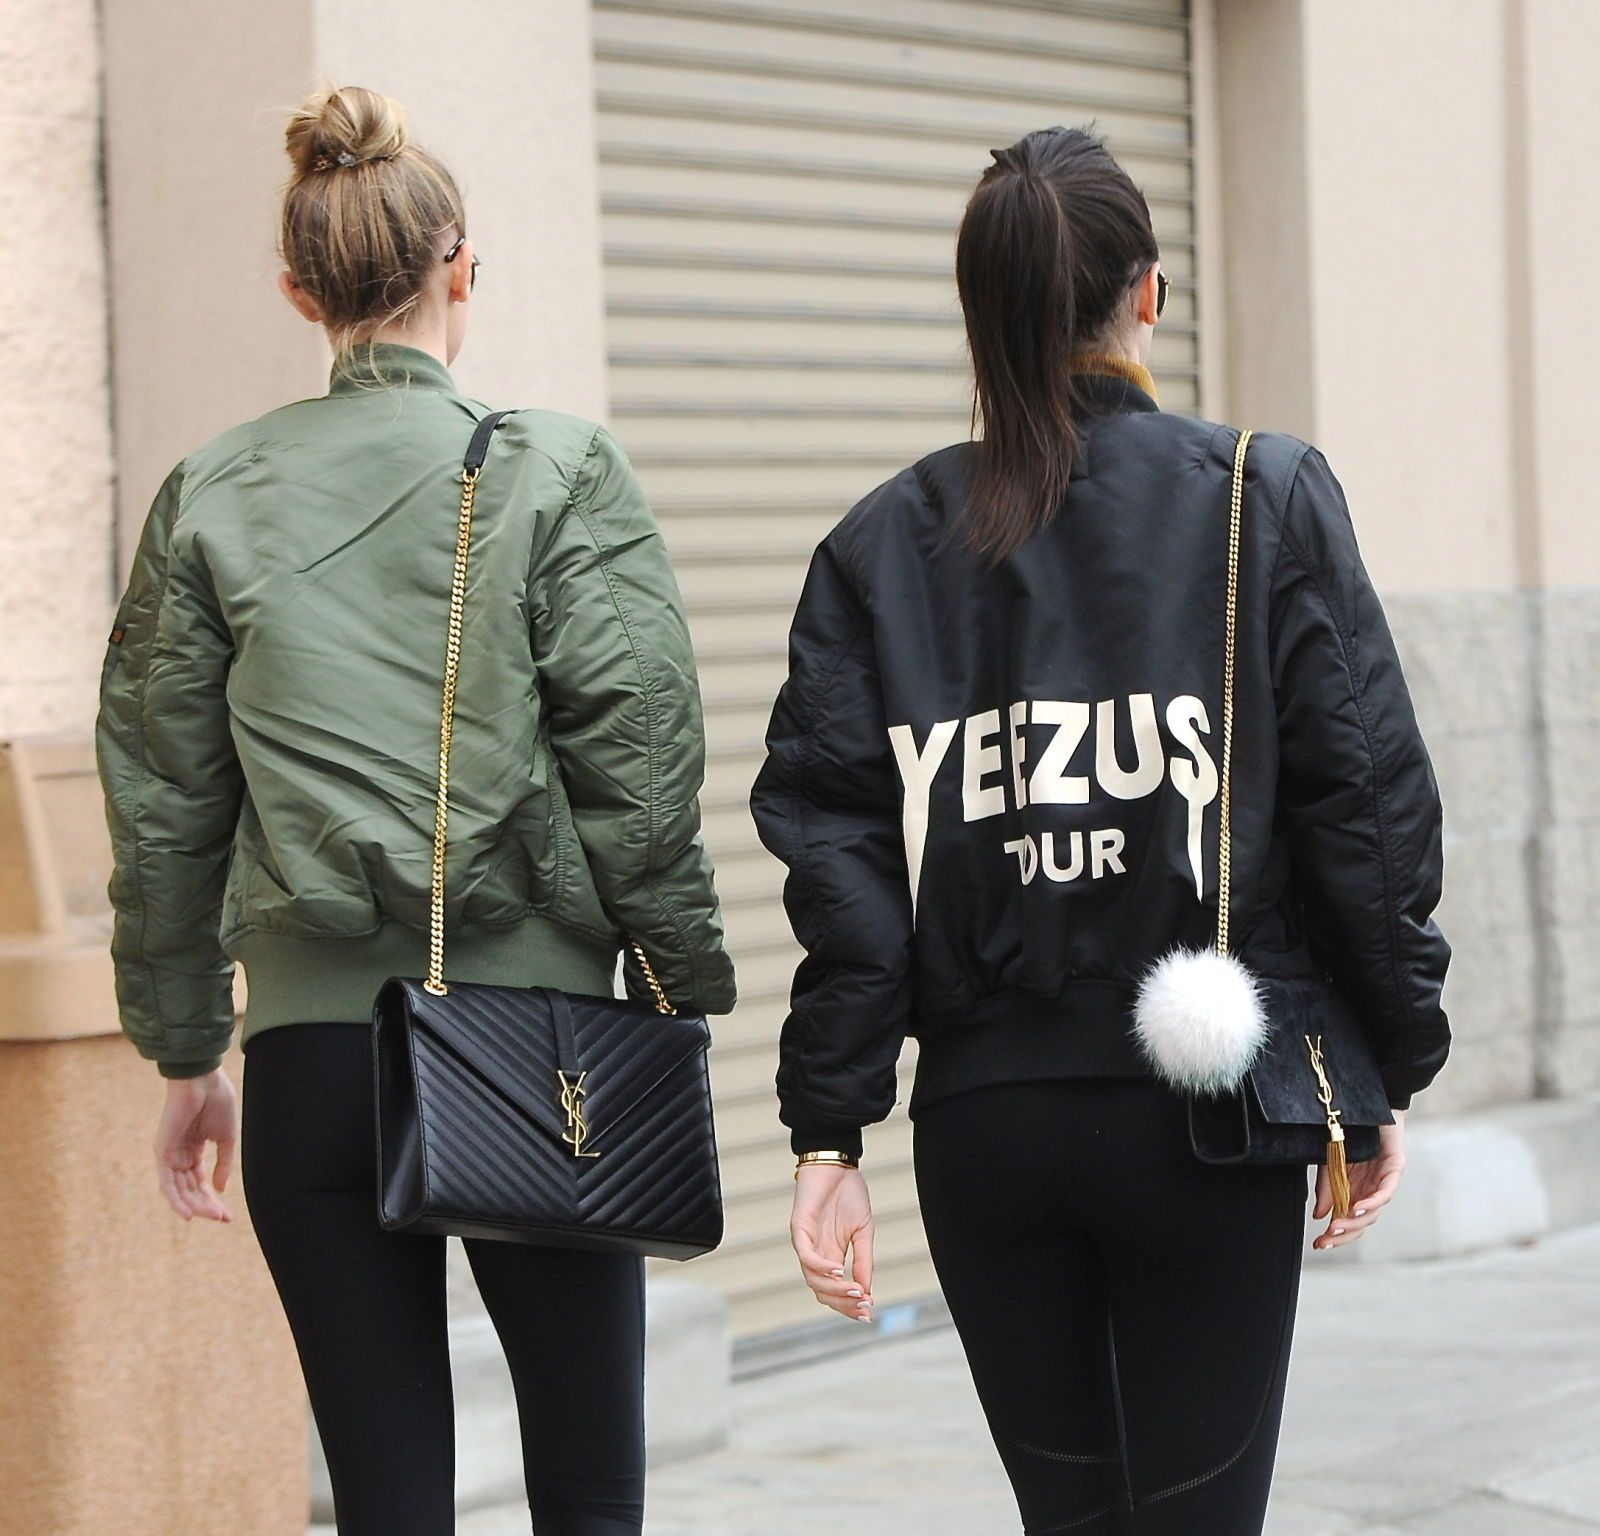 b43ebc29e12 Gigi Hadid and Kendall Jenner step out in matching bomber jackets and YSL  bags: